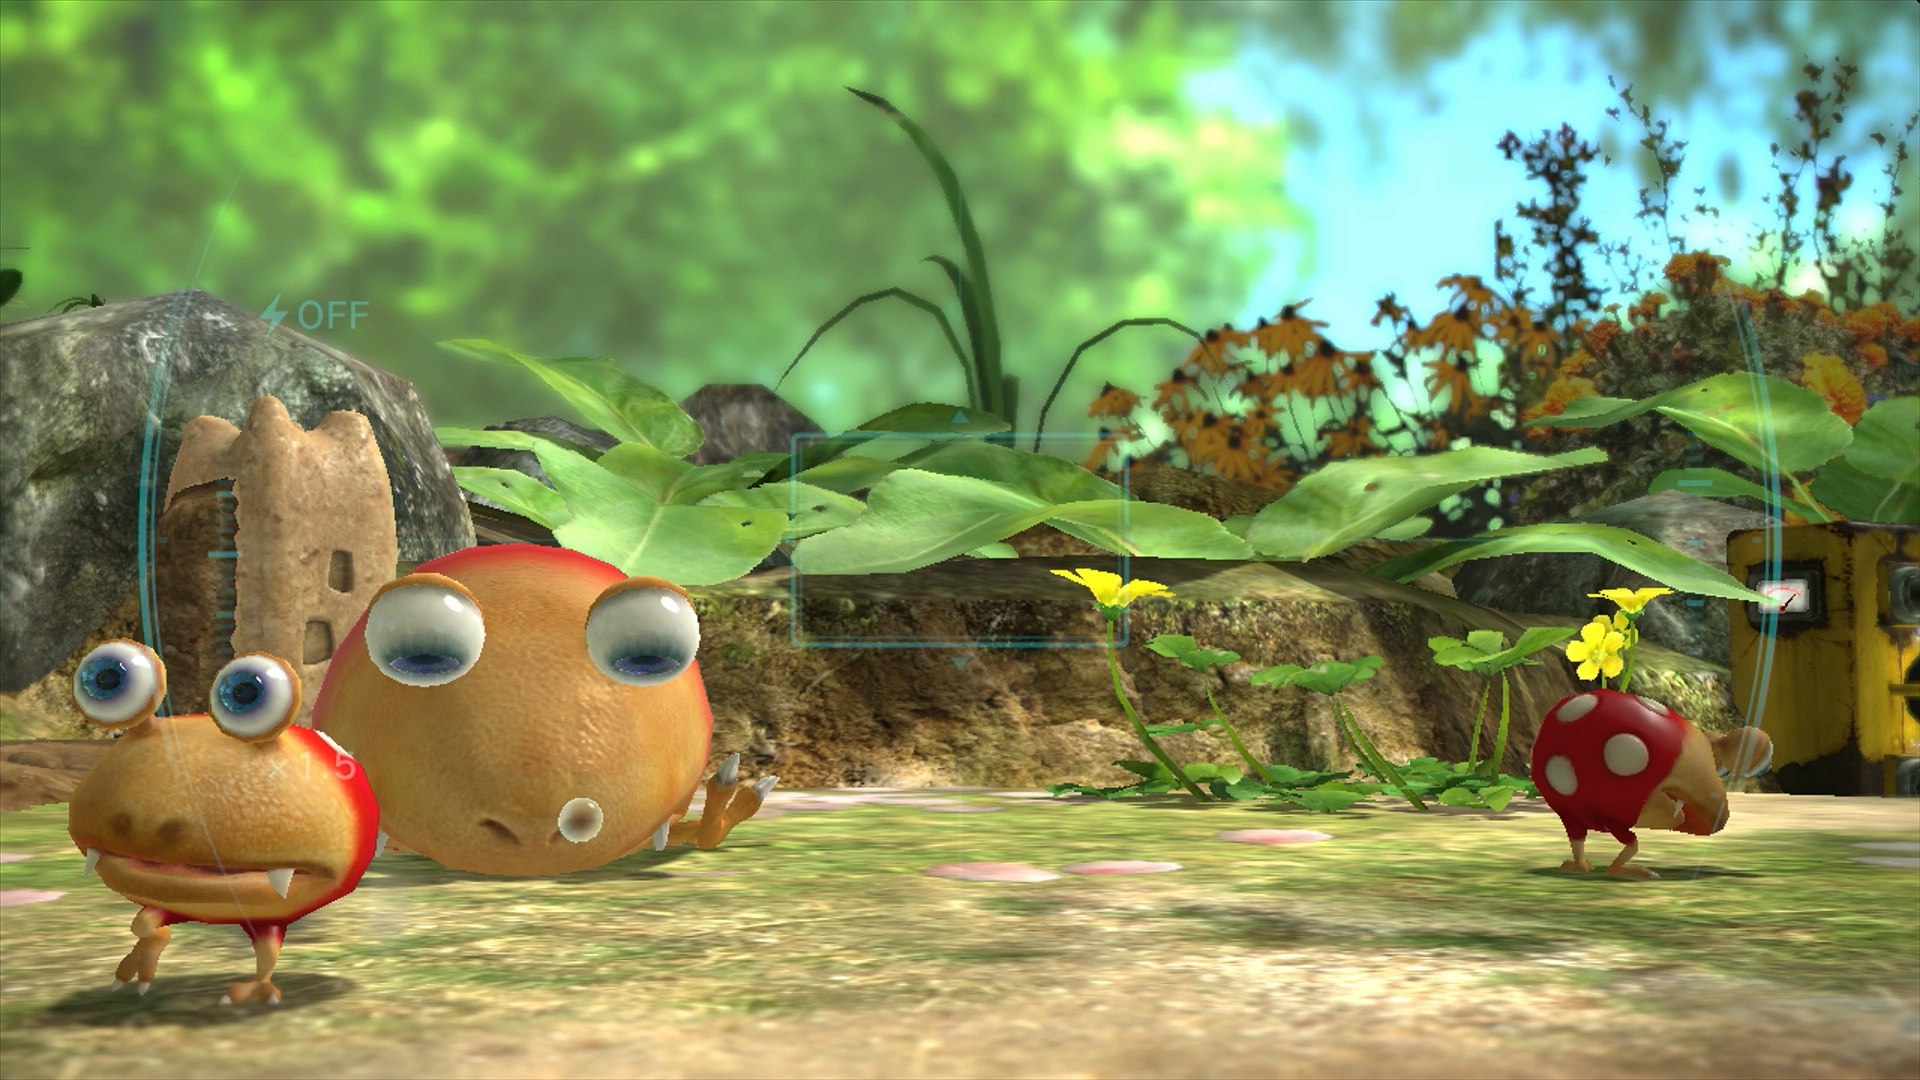 file_60960_WiiU_Pikmin3_Preview-12